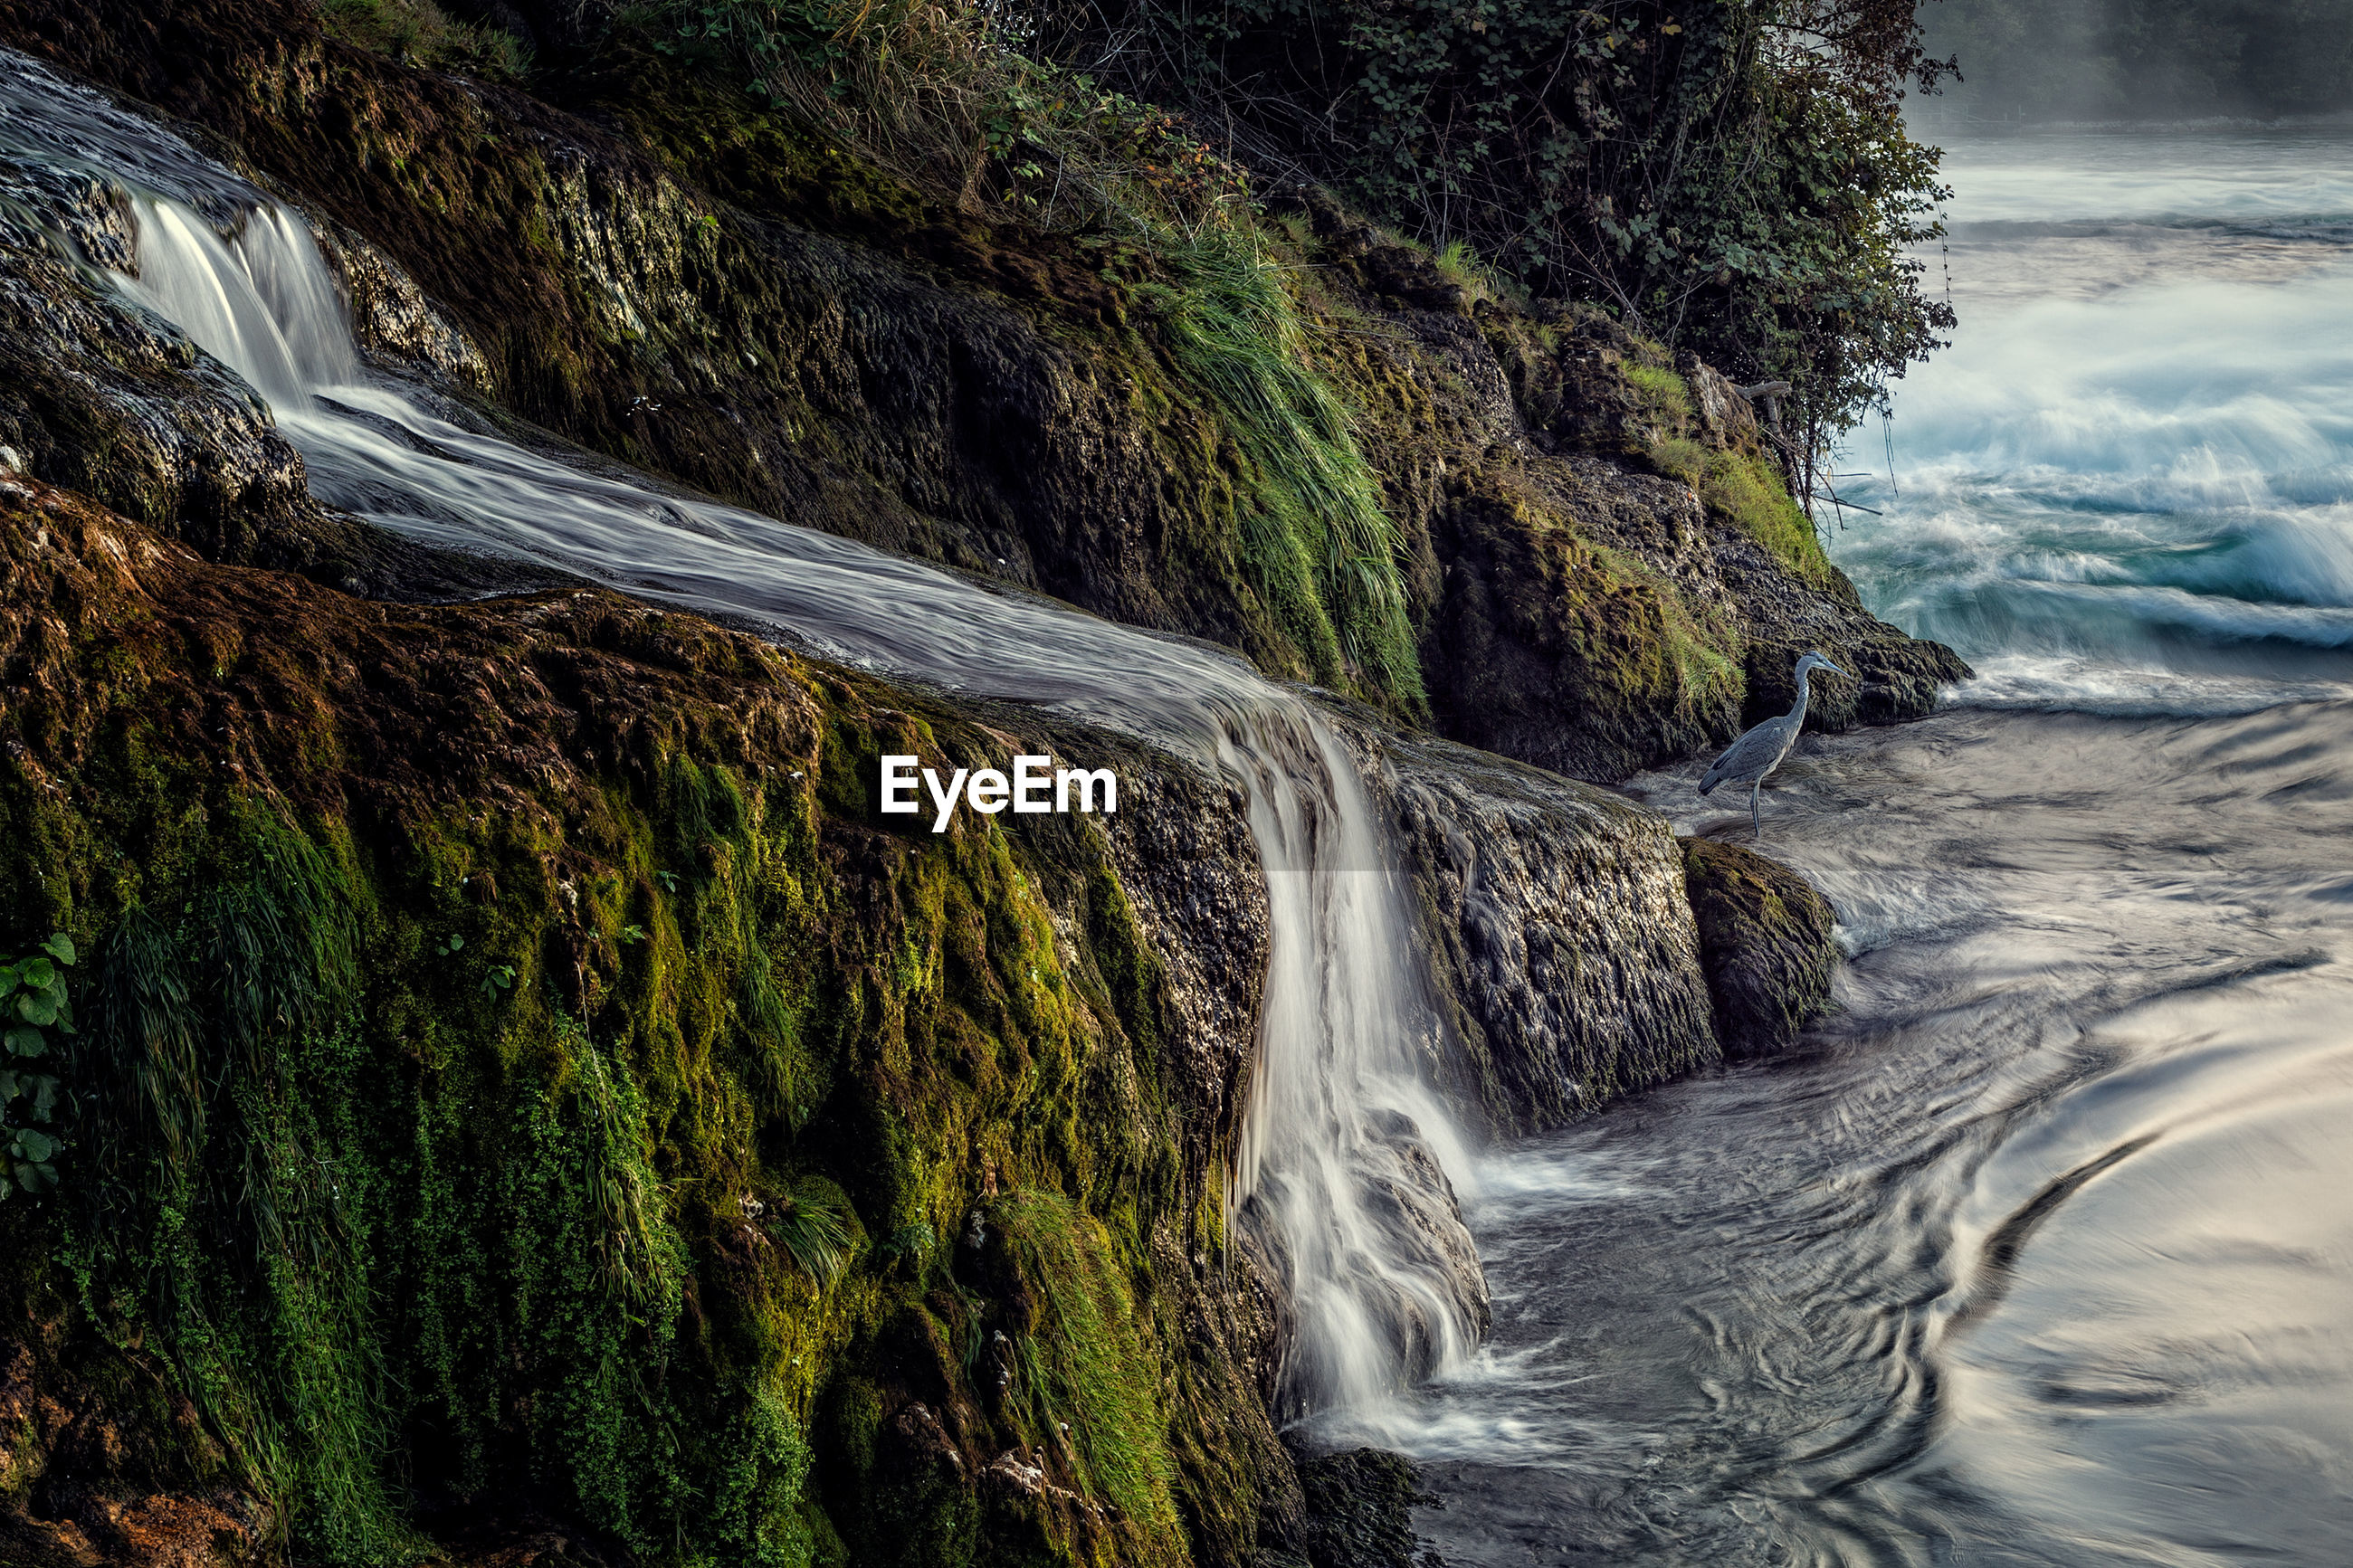 SCENIC VIEW OF WATER FLOWING FROM ROCKS